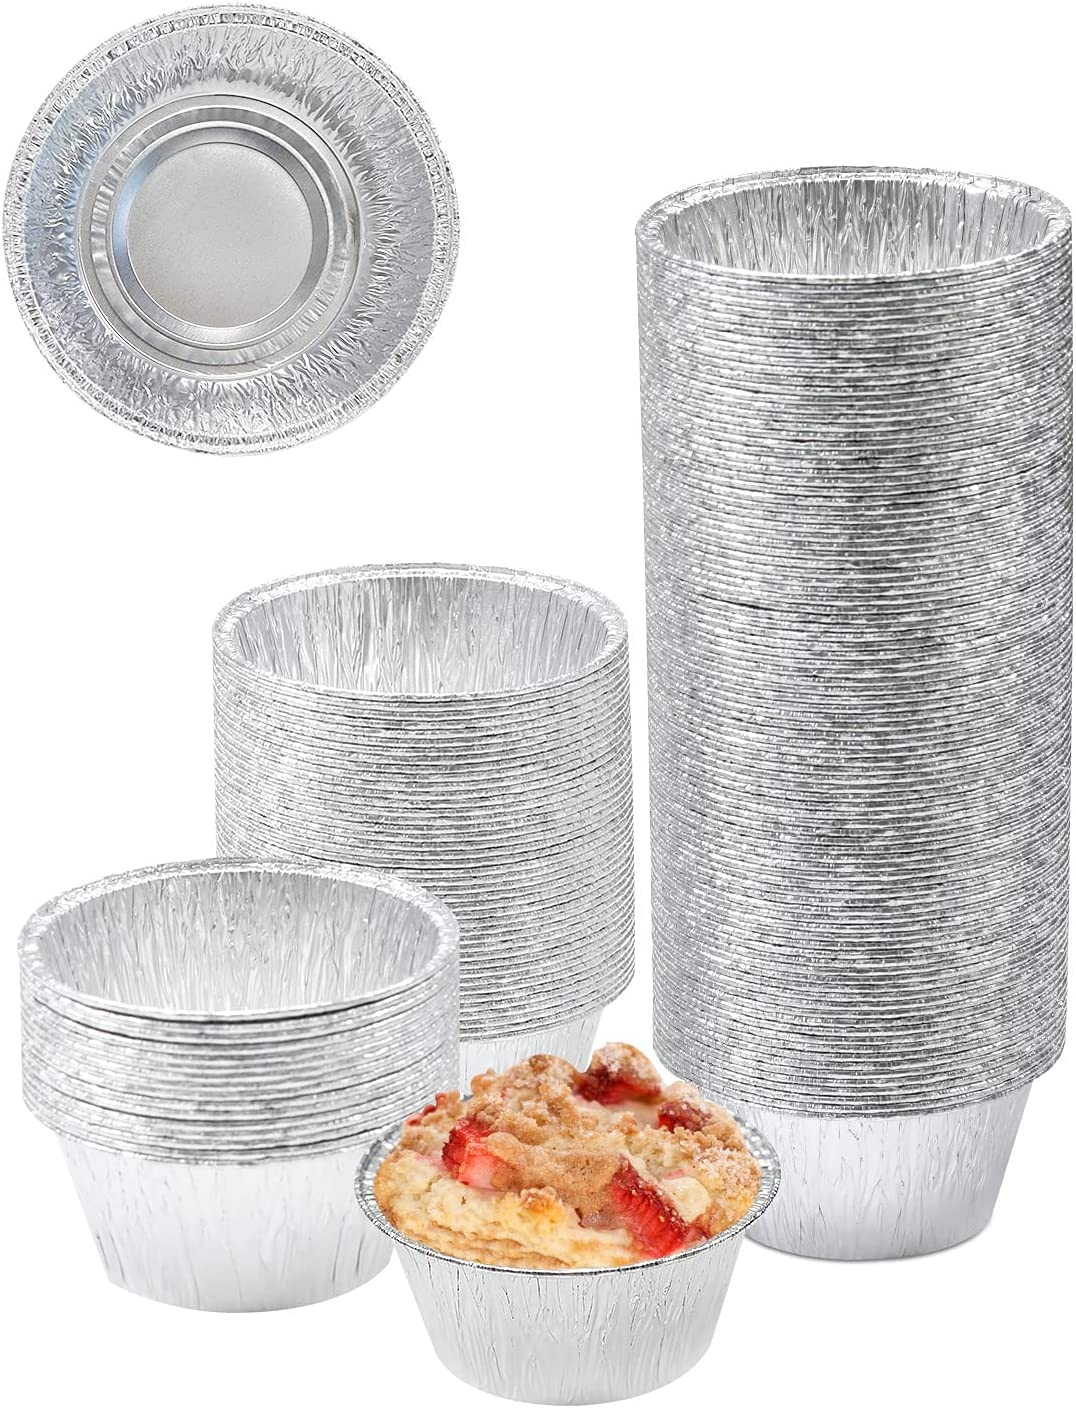 FiveEyes Baking Cups Aluminum Foil 4 Disposable 150Pcs Ramekins Large discharge sale Spring new work one after another